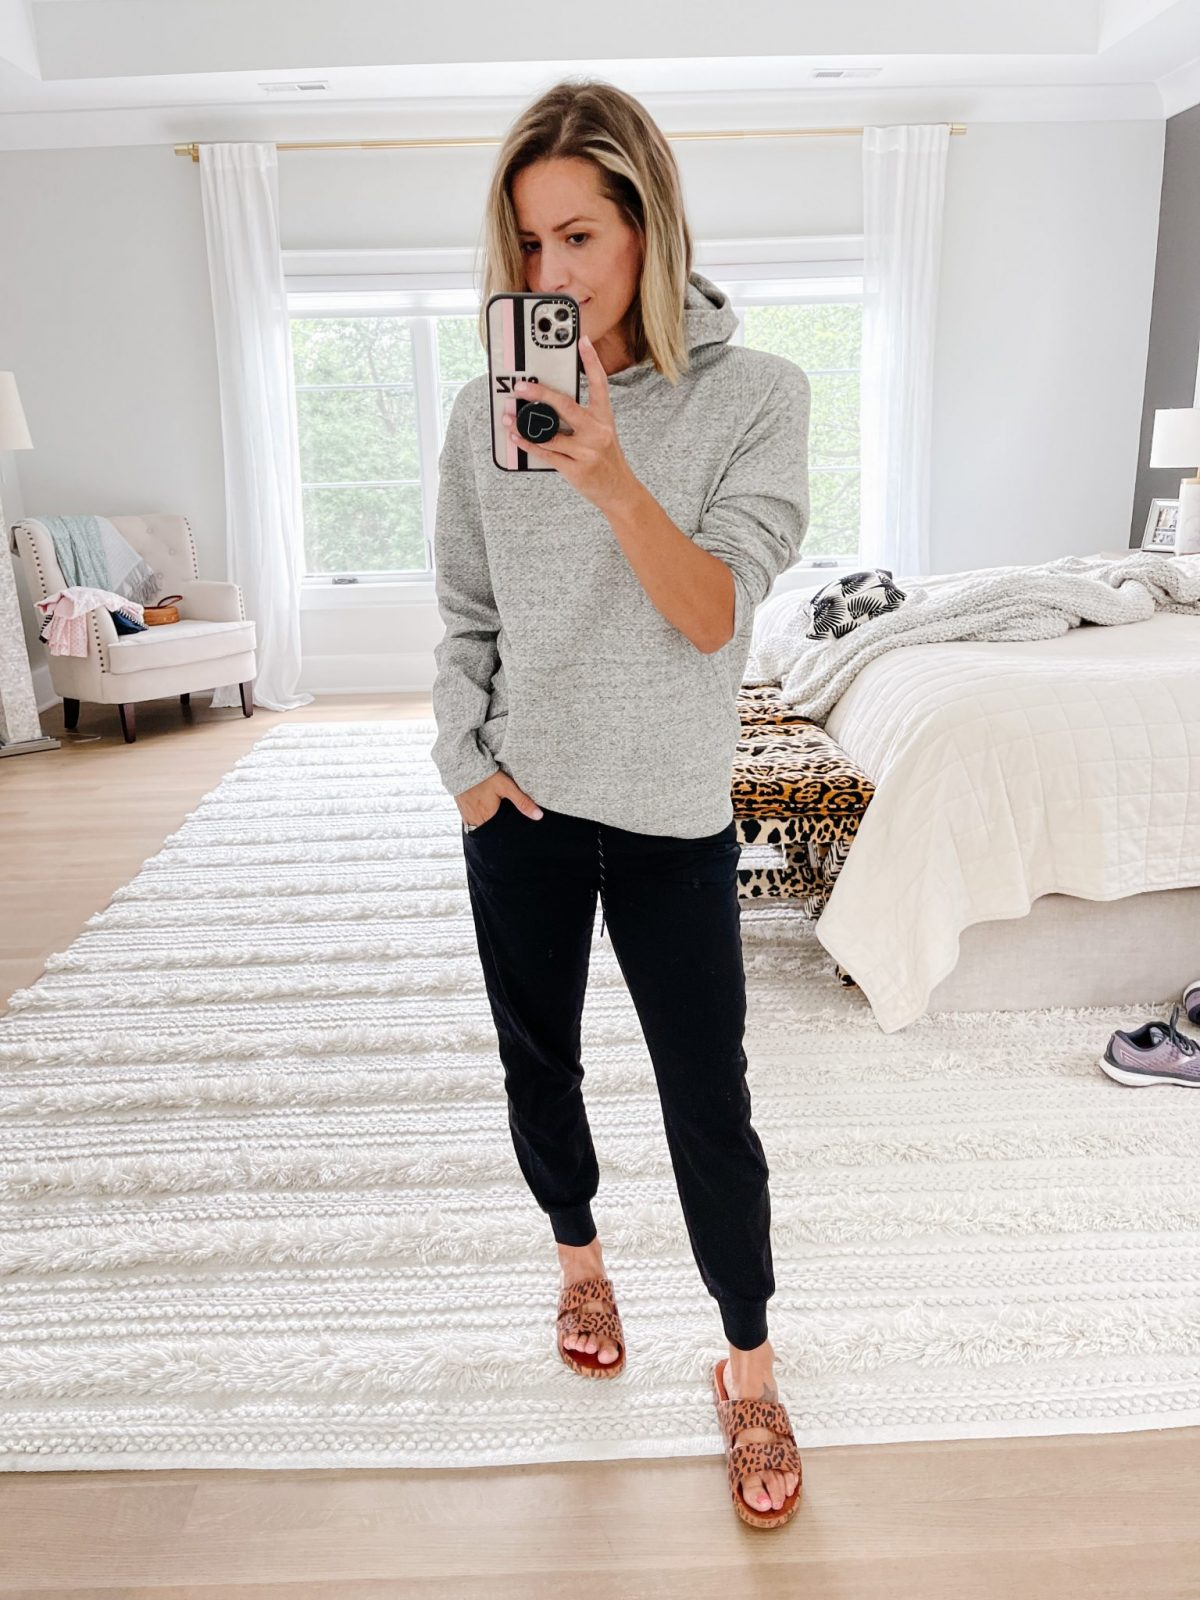 Late summer #ootd round up, pullover and joggers